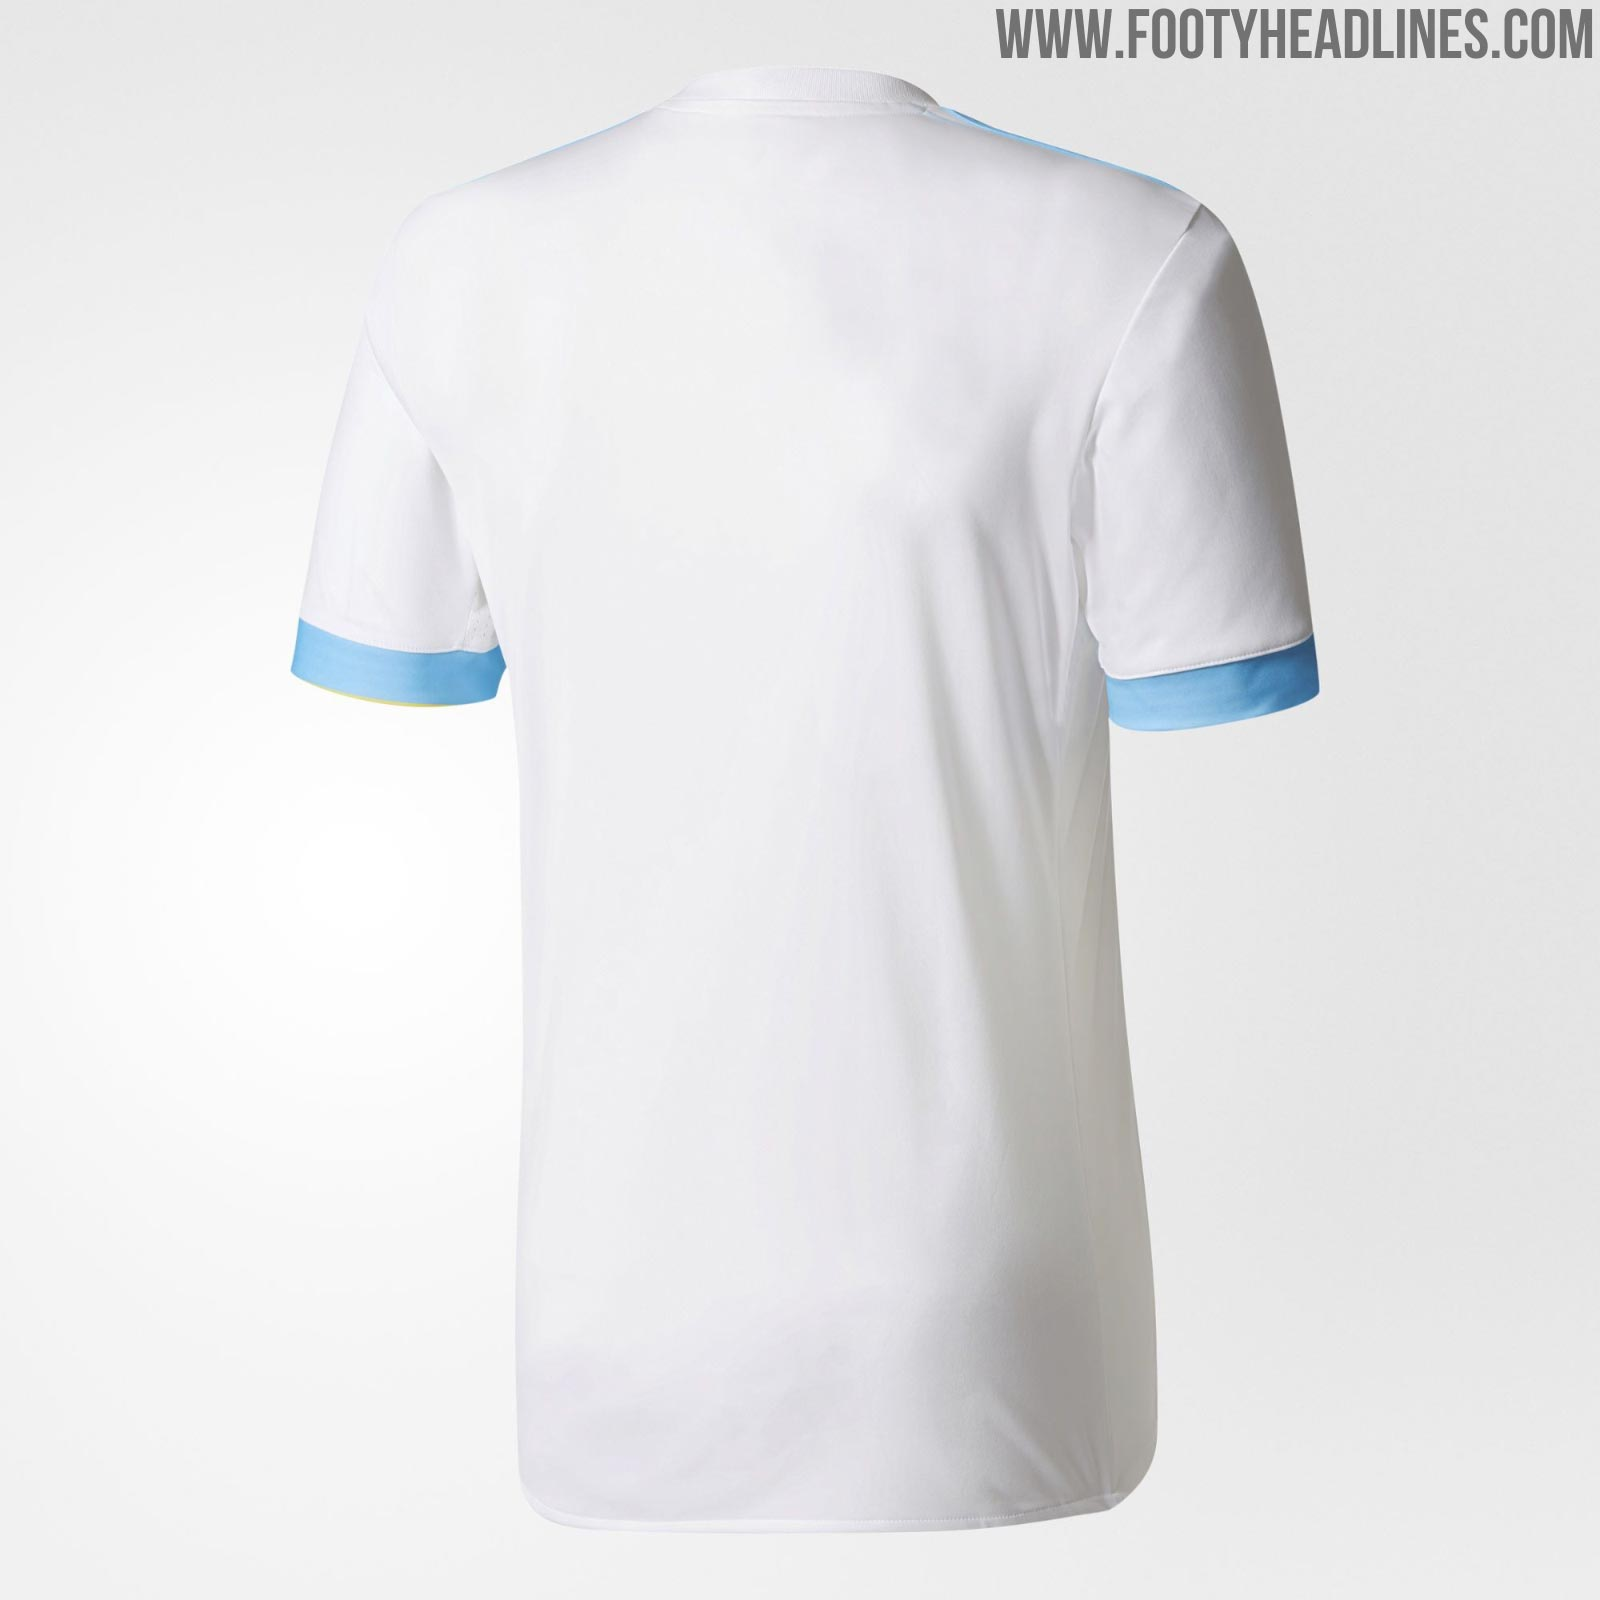 https://image.ibb.co/eP0sda/Olympique_Marseille_home_kit_2.jpg